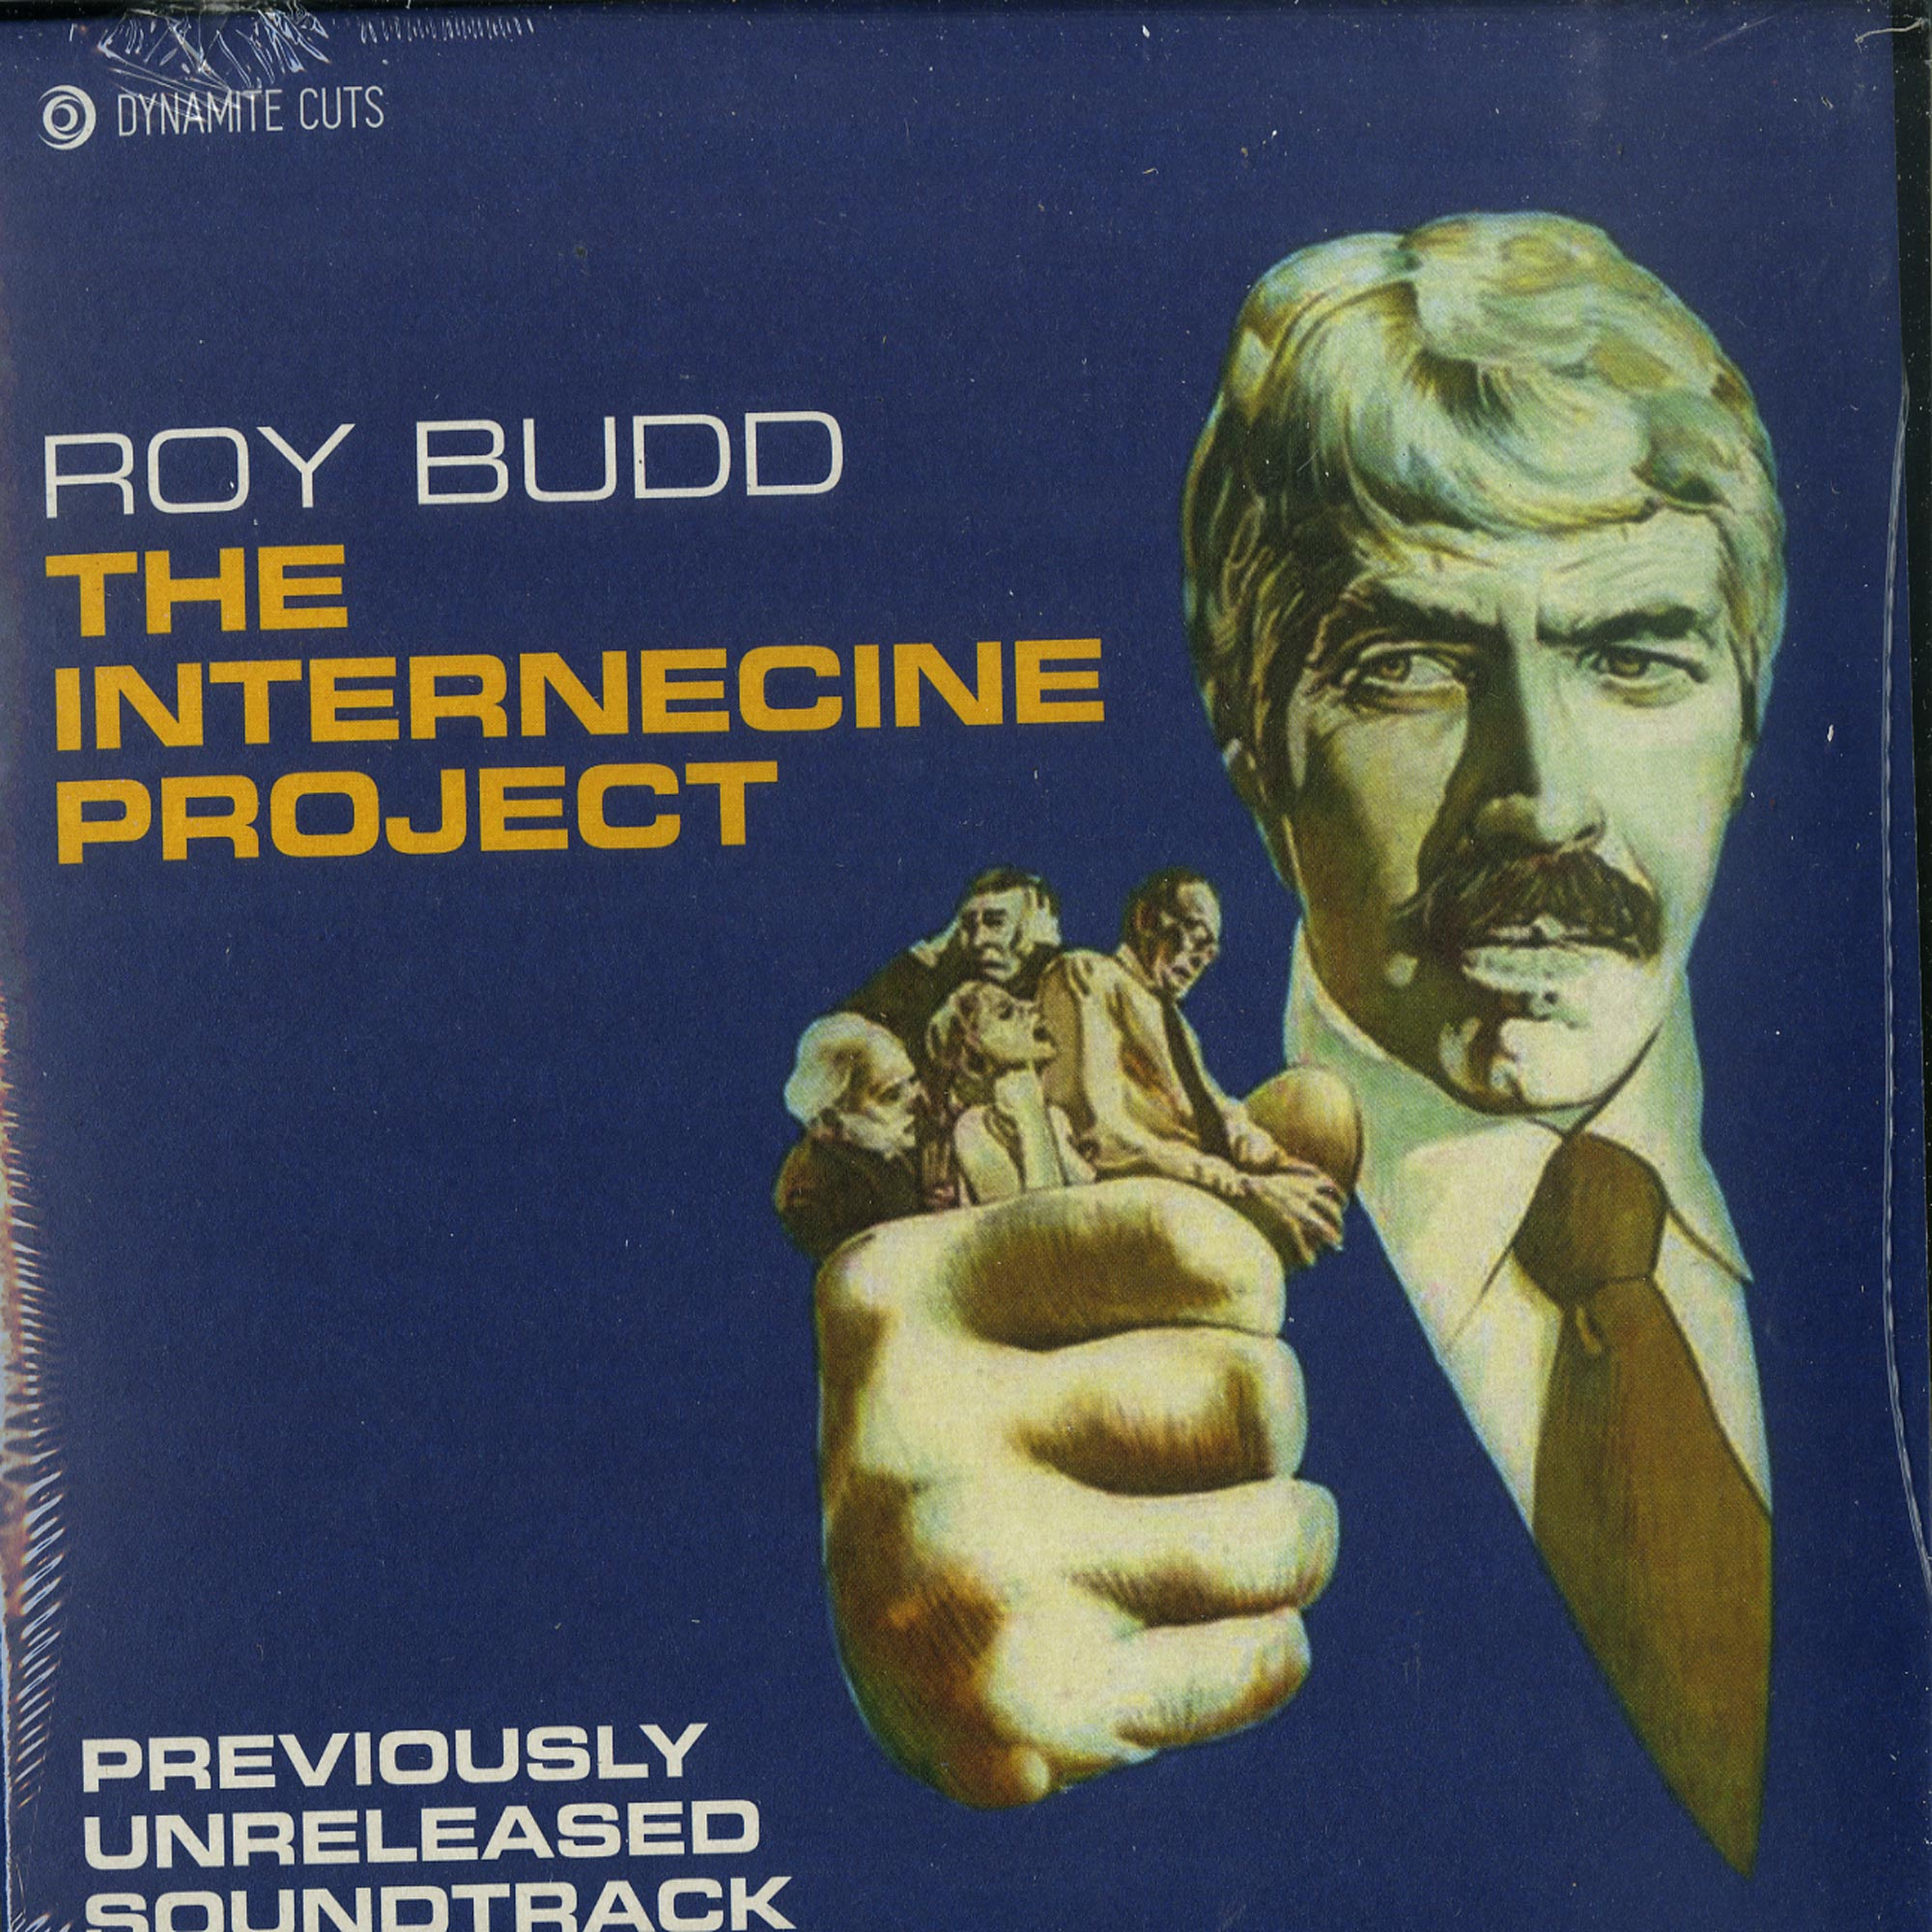 Roy Budd - THE INTERNECINE PROJECT O.S.T.